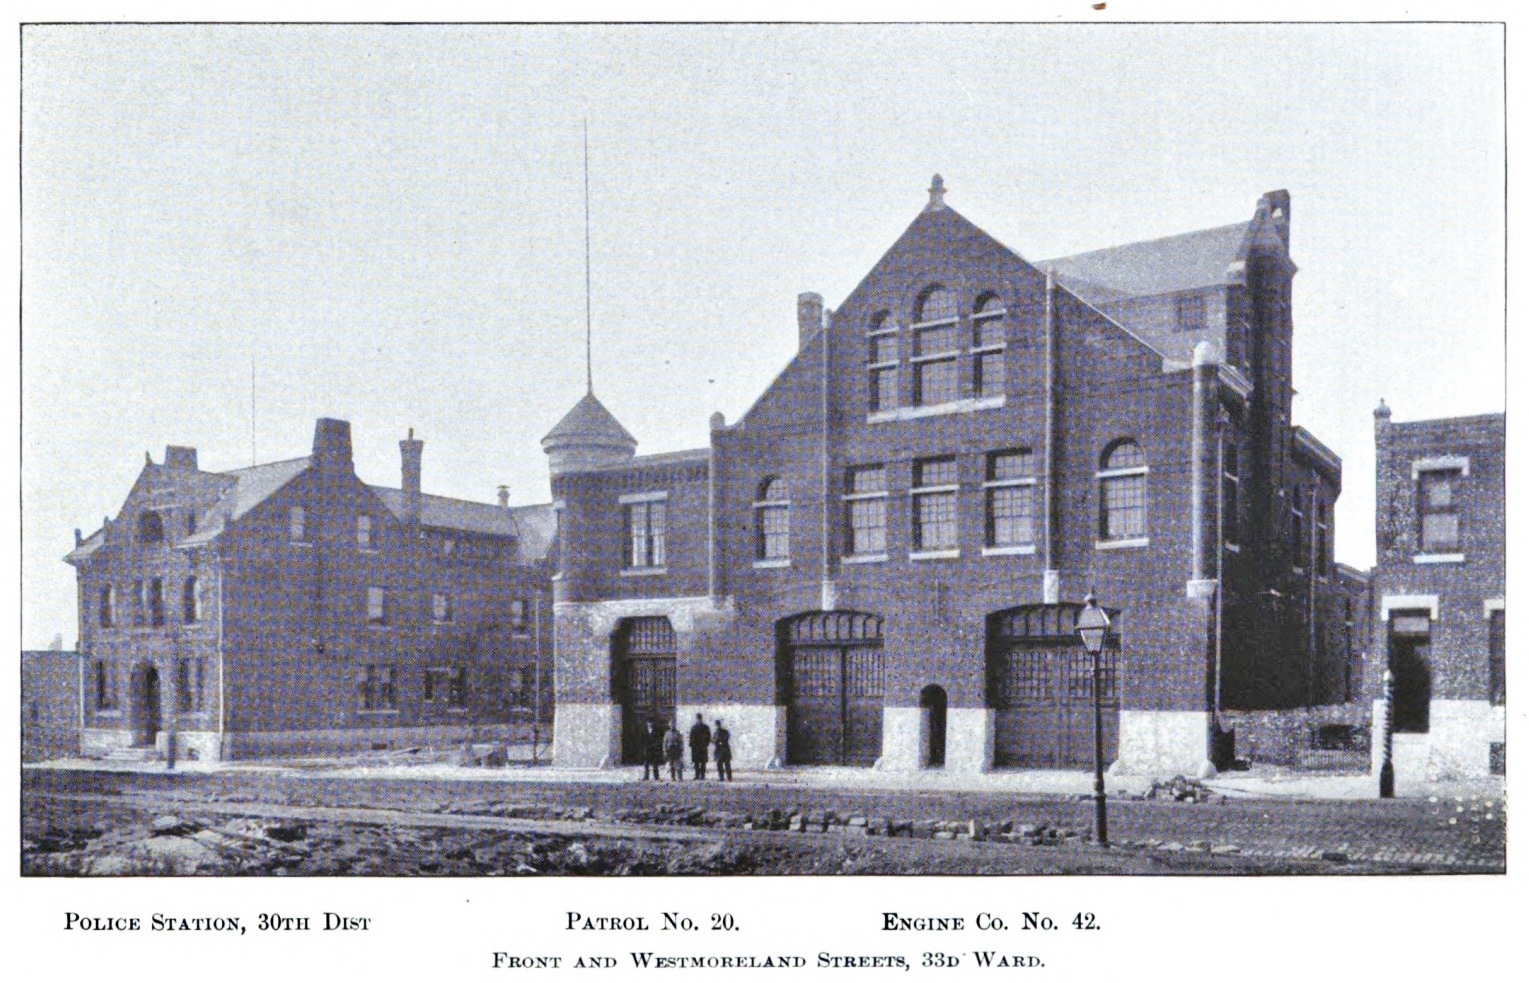 Philly Stuff Engine 42 Patrol No 20 Police Station 30th Dist Front And Westmoreland Sts